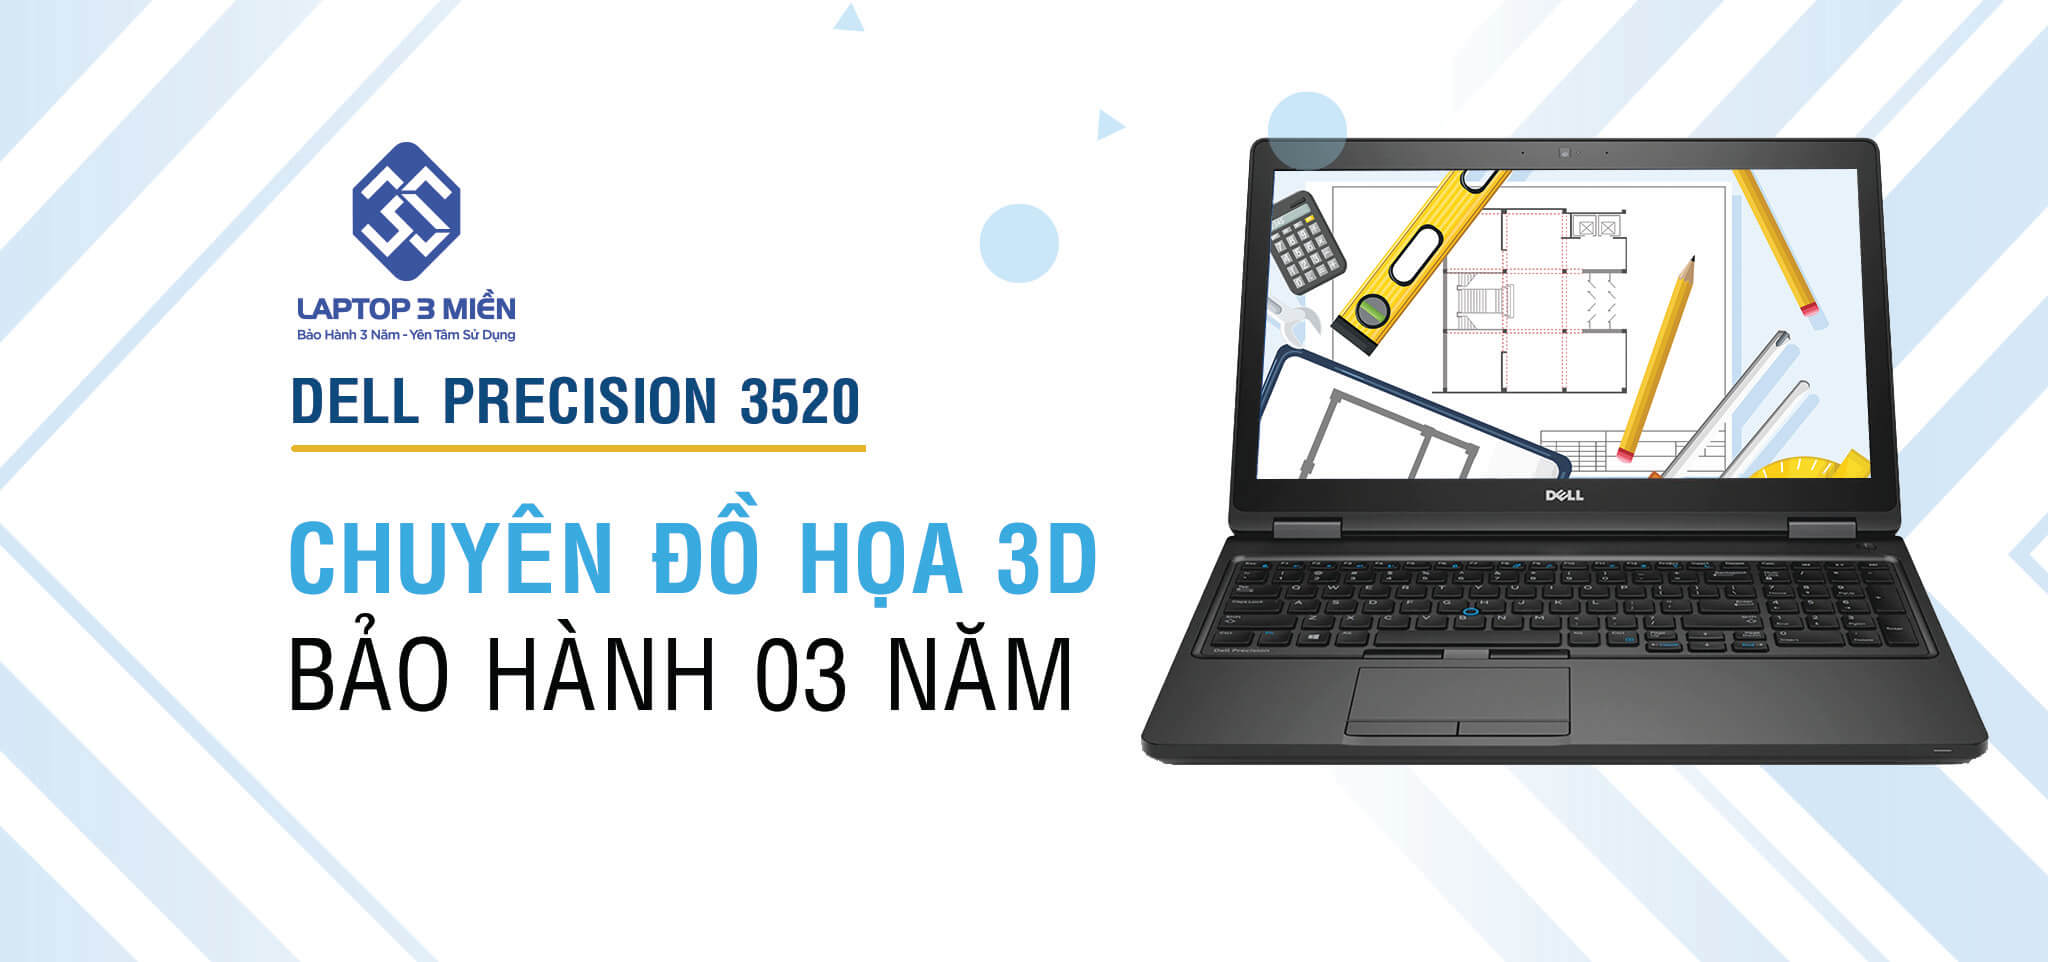 DELL prcision 3520_laptopcu.com